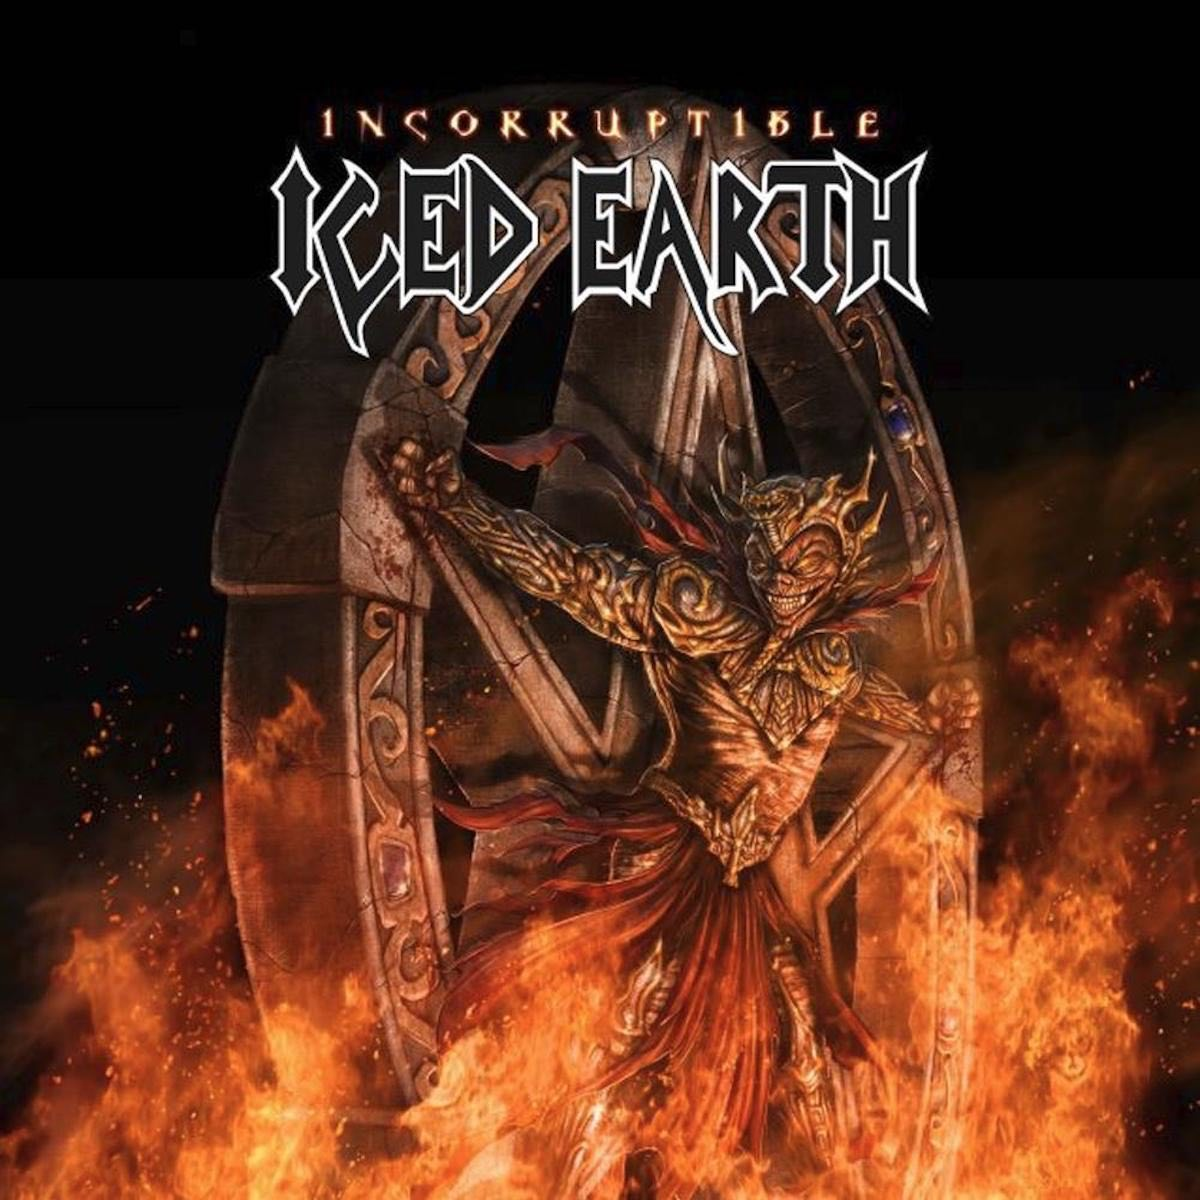 Iced Earth: Incorruptible (2017) Book Cover